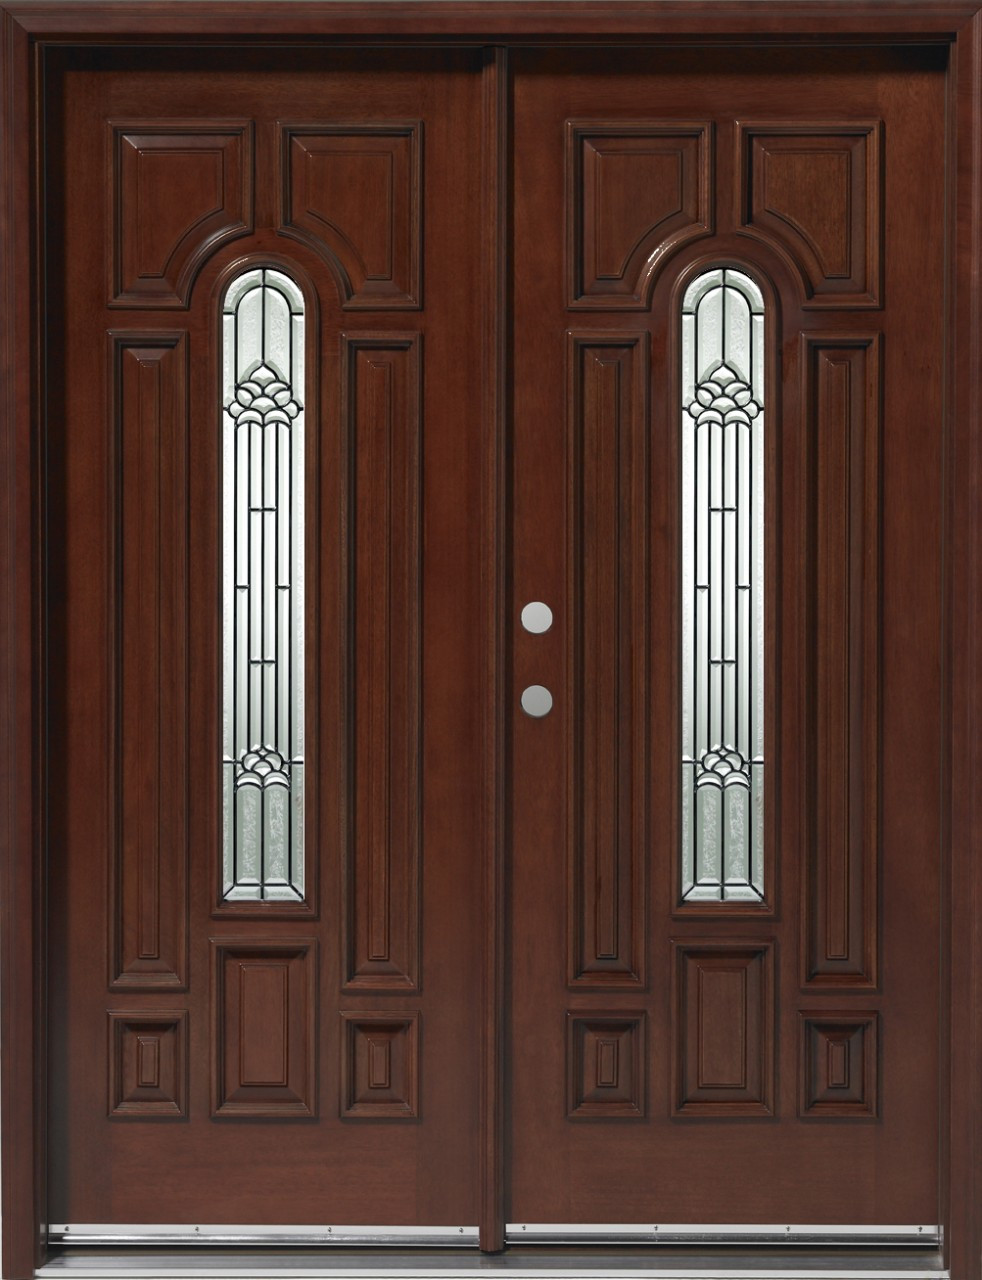 Home entrance door prehung exterior door for Double doors exterior for homes